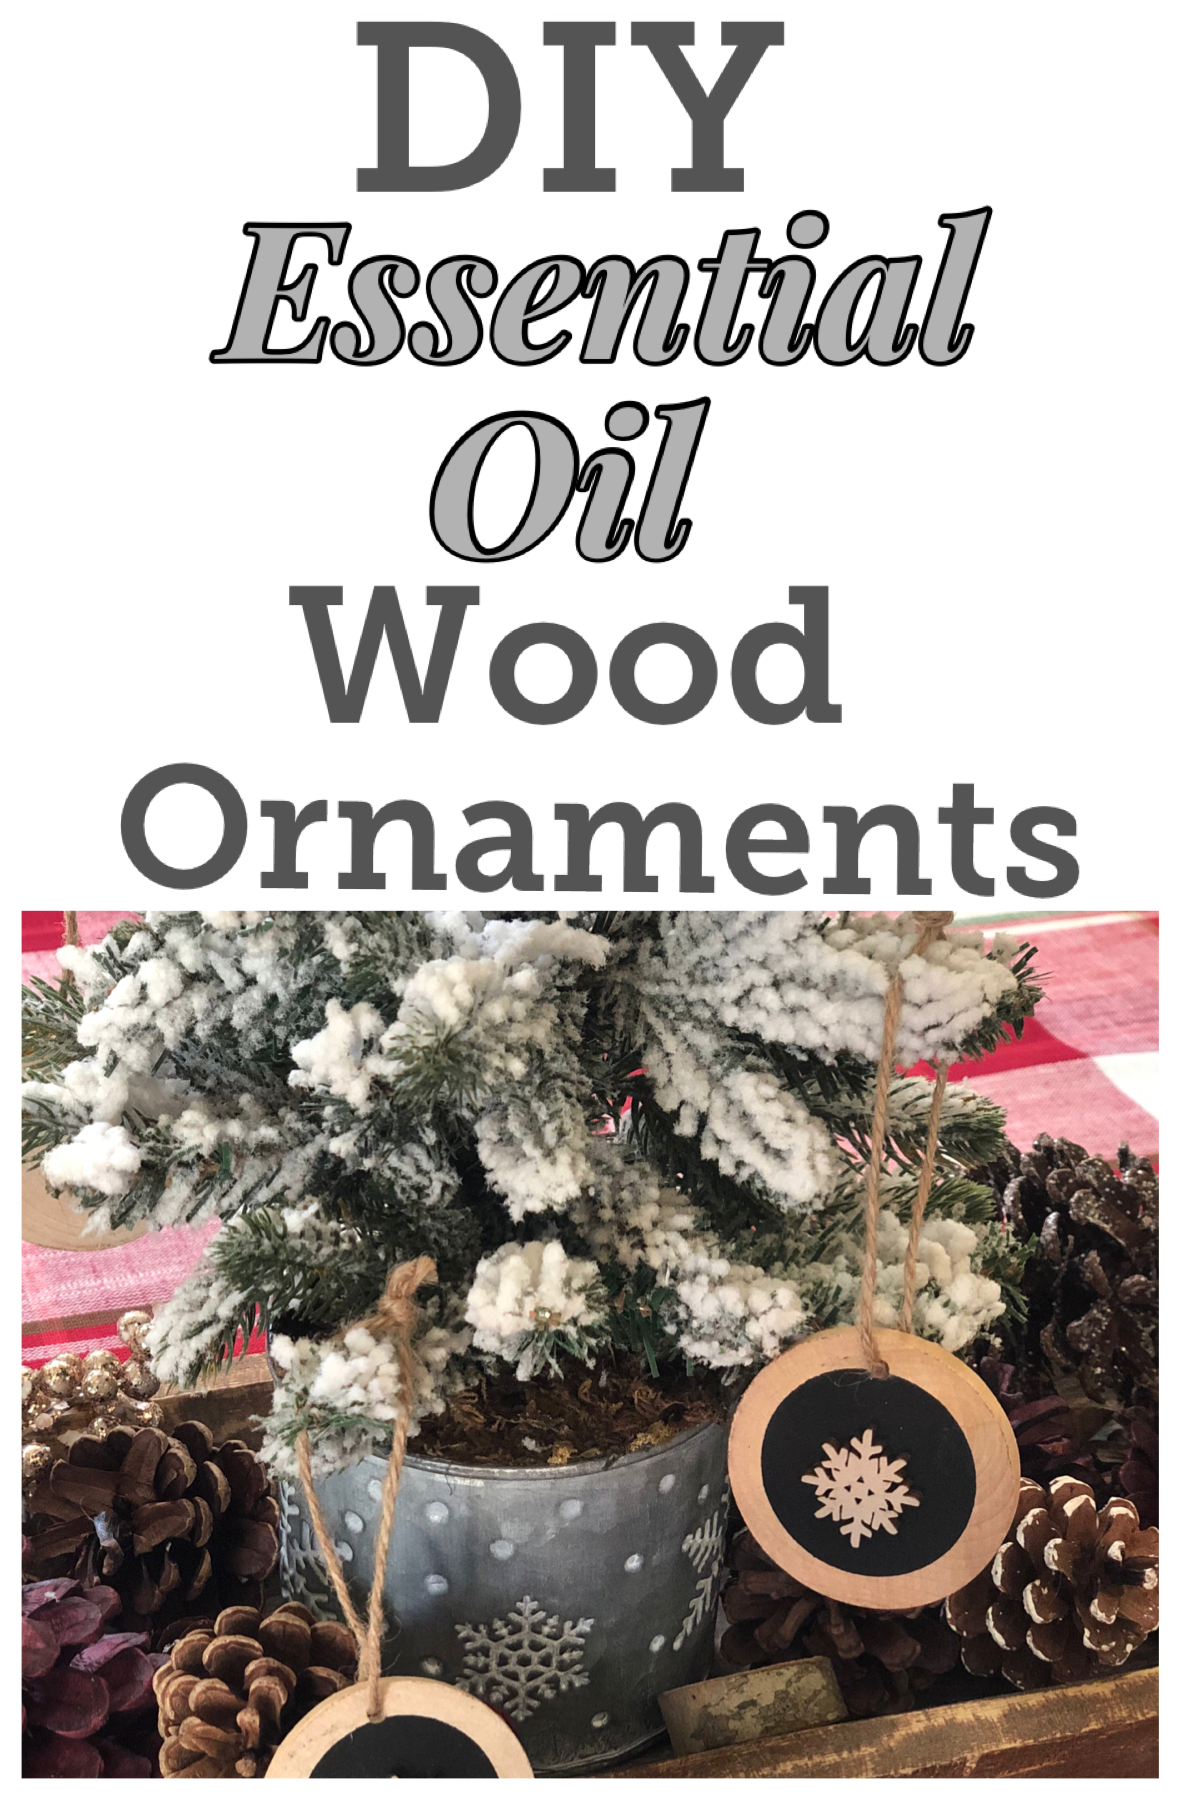 DIY Essential Oil Wood Ornaments, make these great smelling ornaments for a festive touch to your Christmas tree in less than 5 minutes! FrugallyFantastic.com